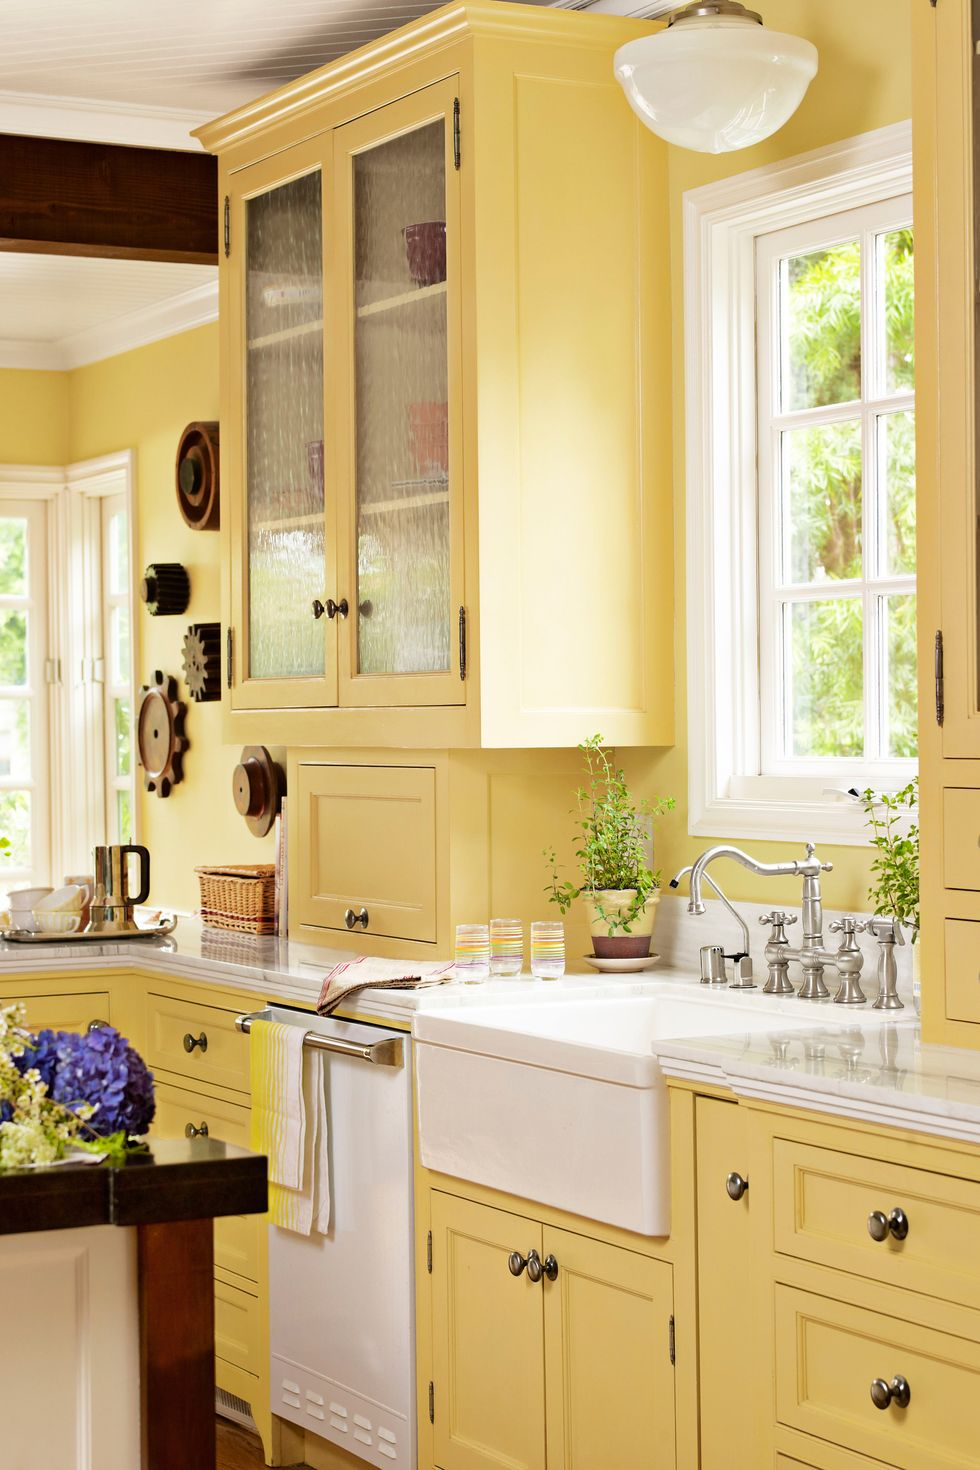 24 Creative Color Ideas for Your Next Kitchen Reno in 2020